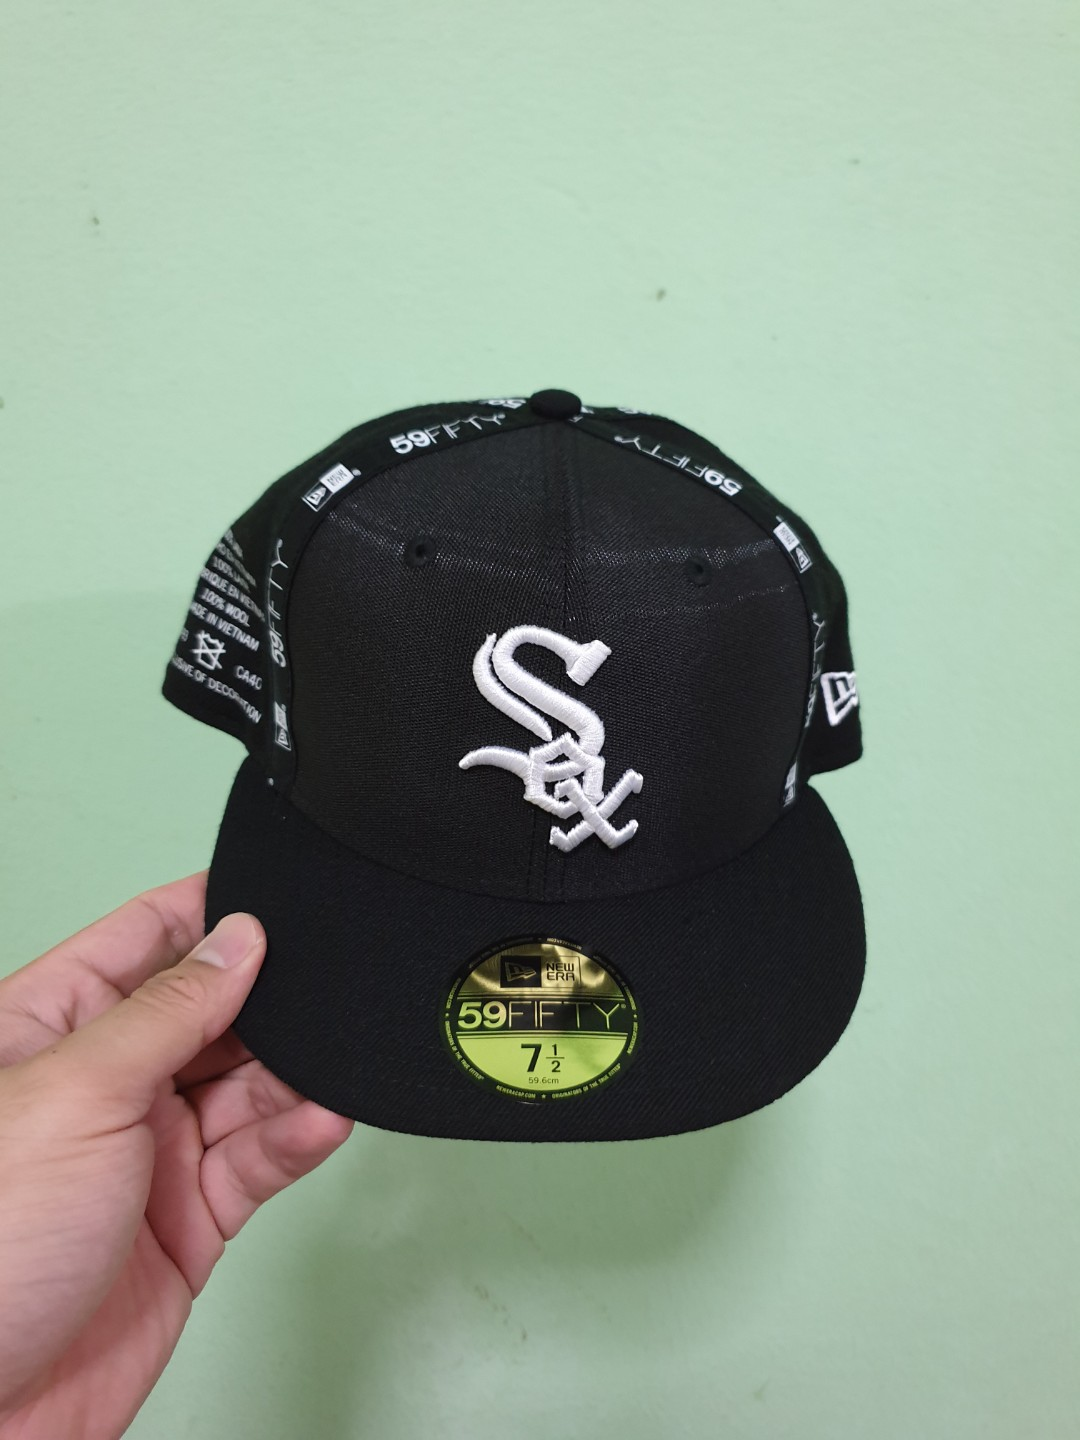 11f2e0adb1a087 Chicago White Sox New Era MLB Inside Out 59FIFTY Cap, Men's Fashion,  Accessories, Caps & Hats on Carousell